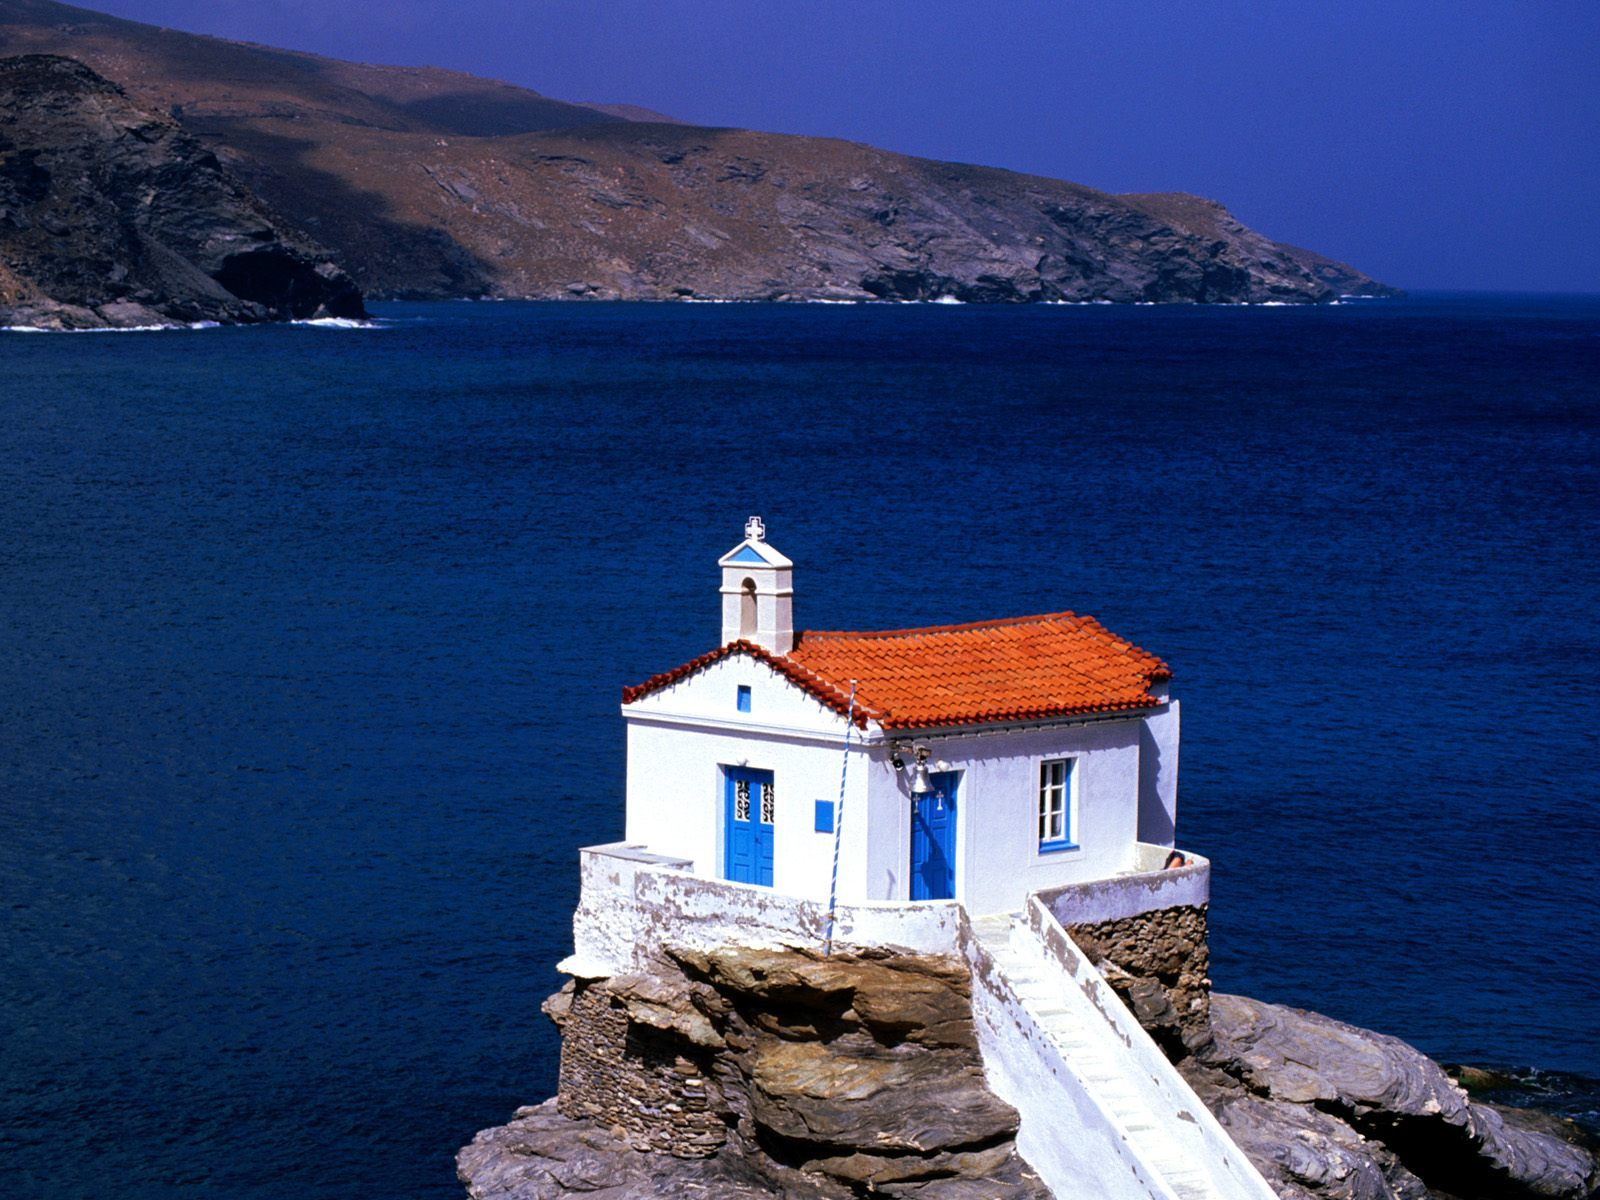 Greek islands. I almost went there on my first trip to Europe in mid 80s. However, we ran out of town after hitting the east coast of Italy and never made it there.